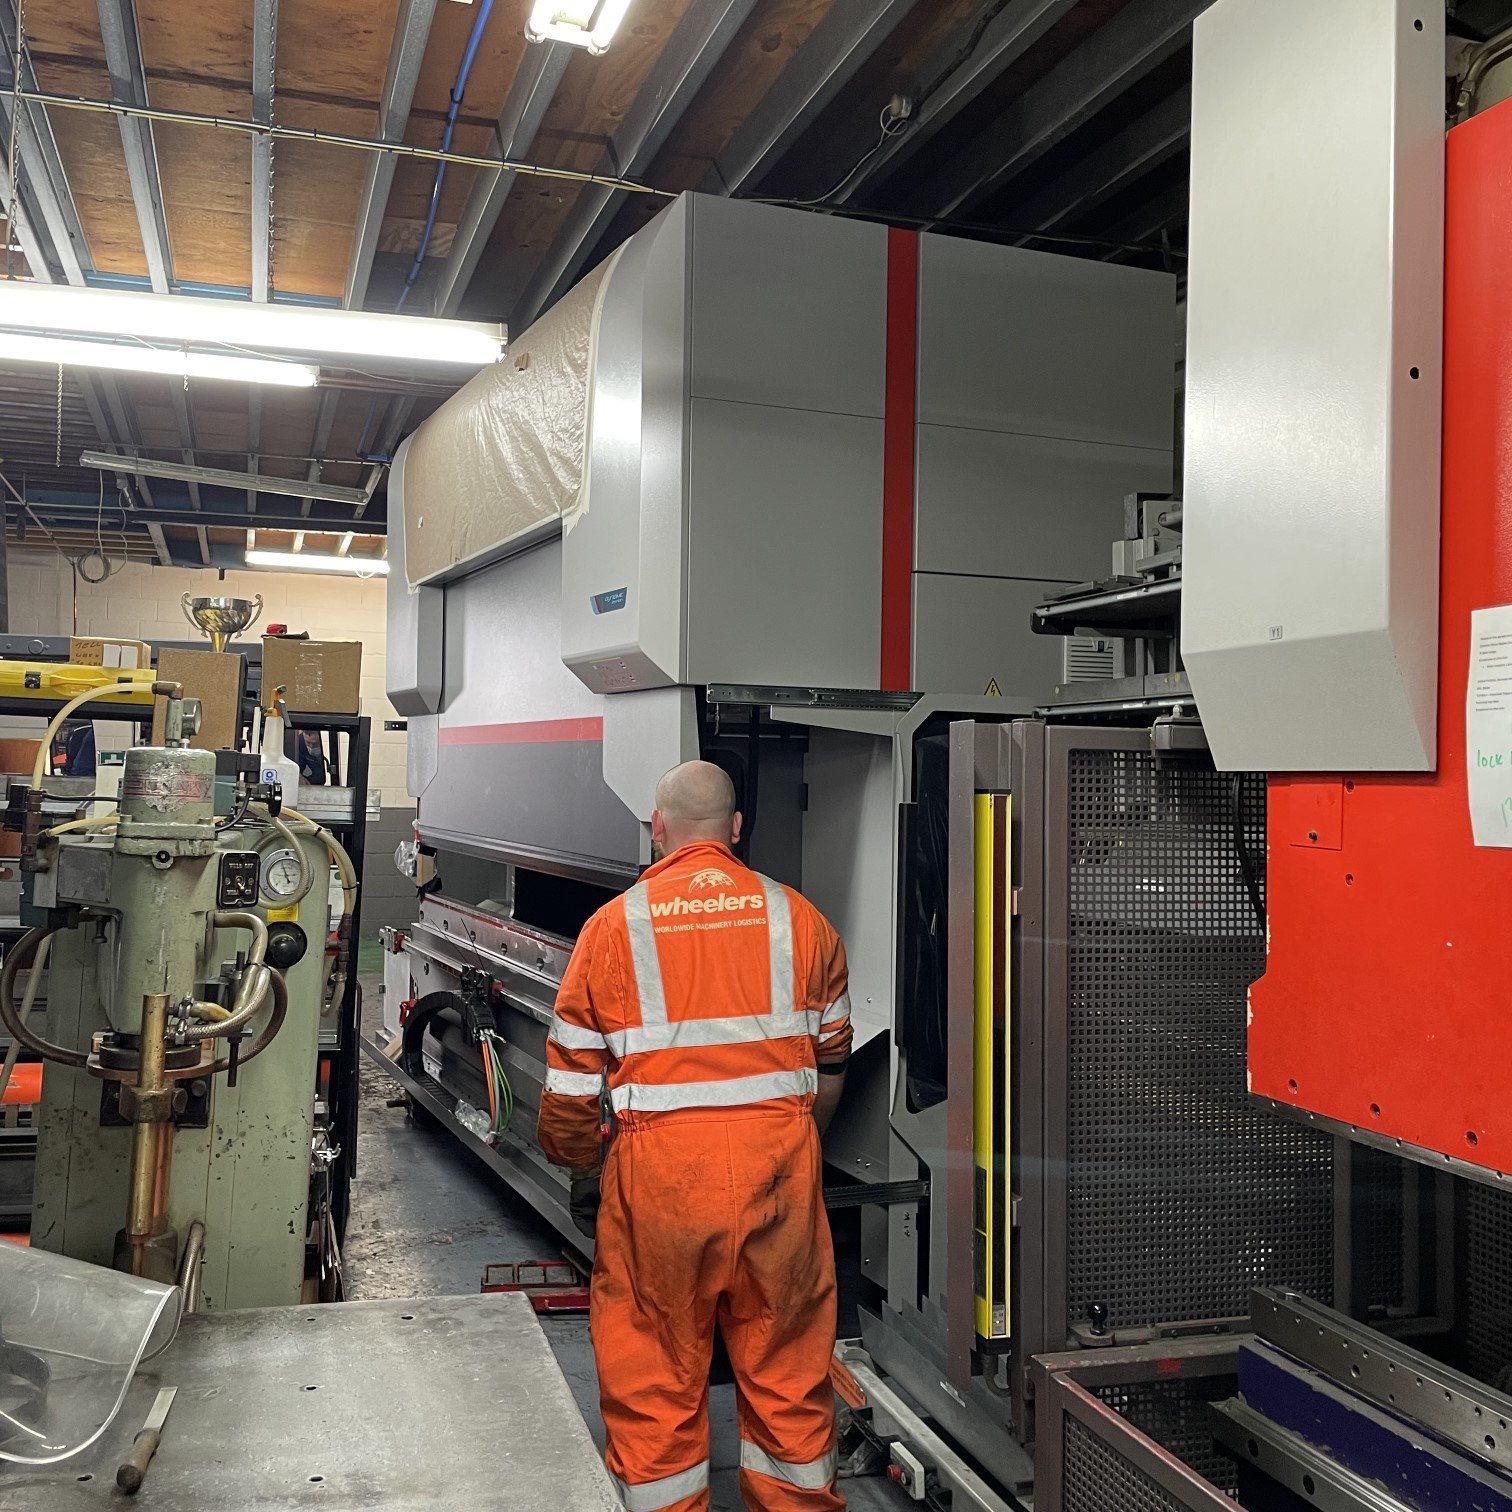 New Investment - It's in! The new press brake moved into its final work station on the shop floor